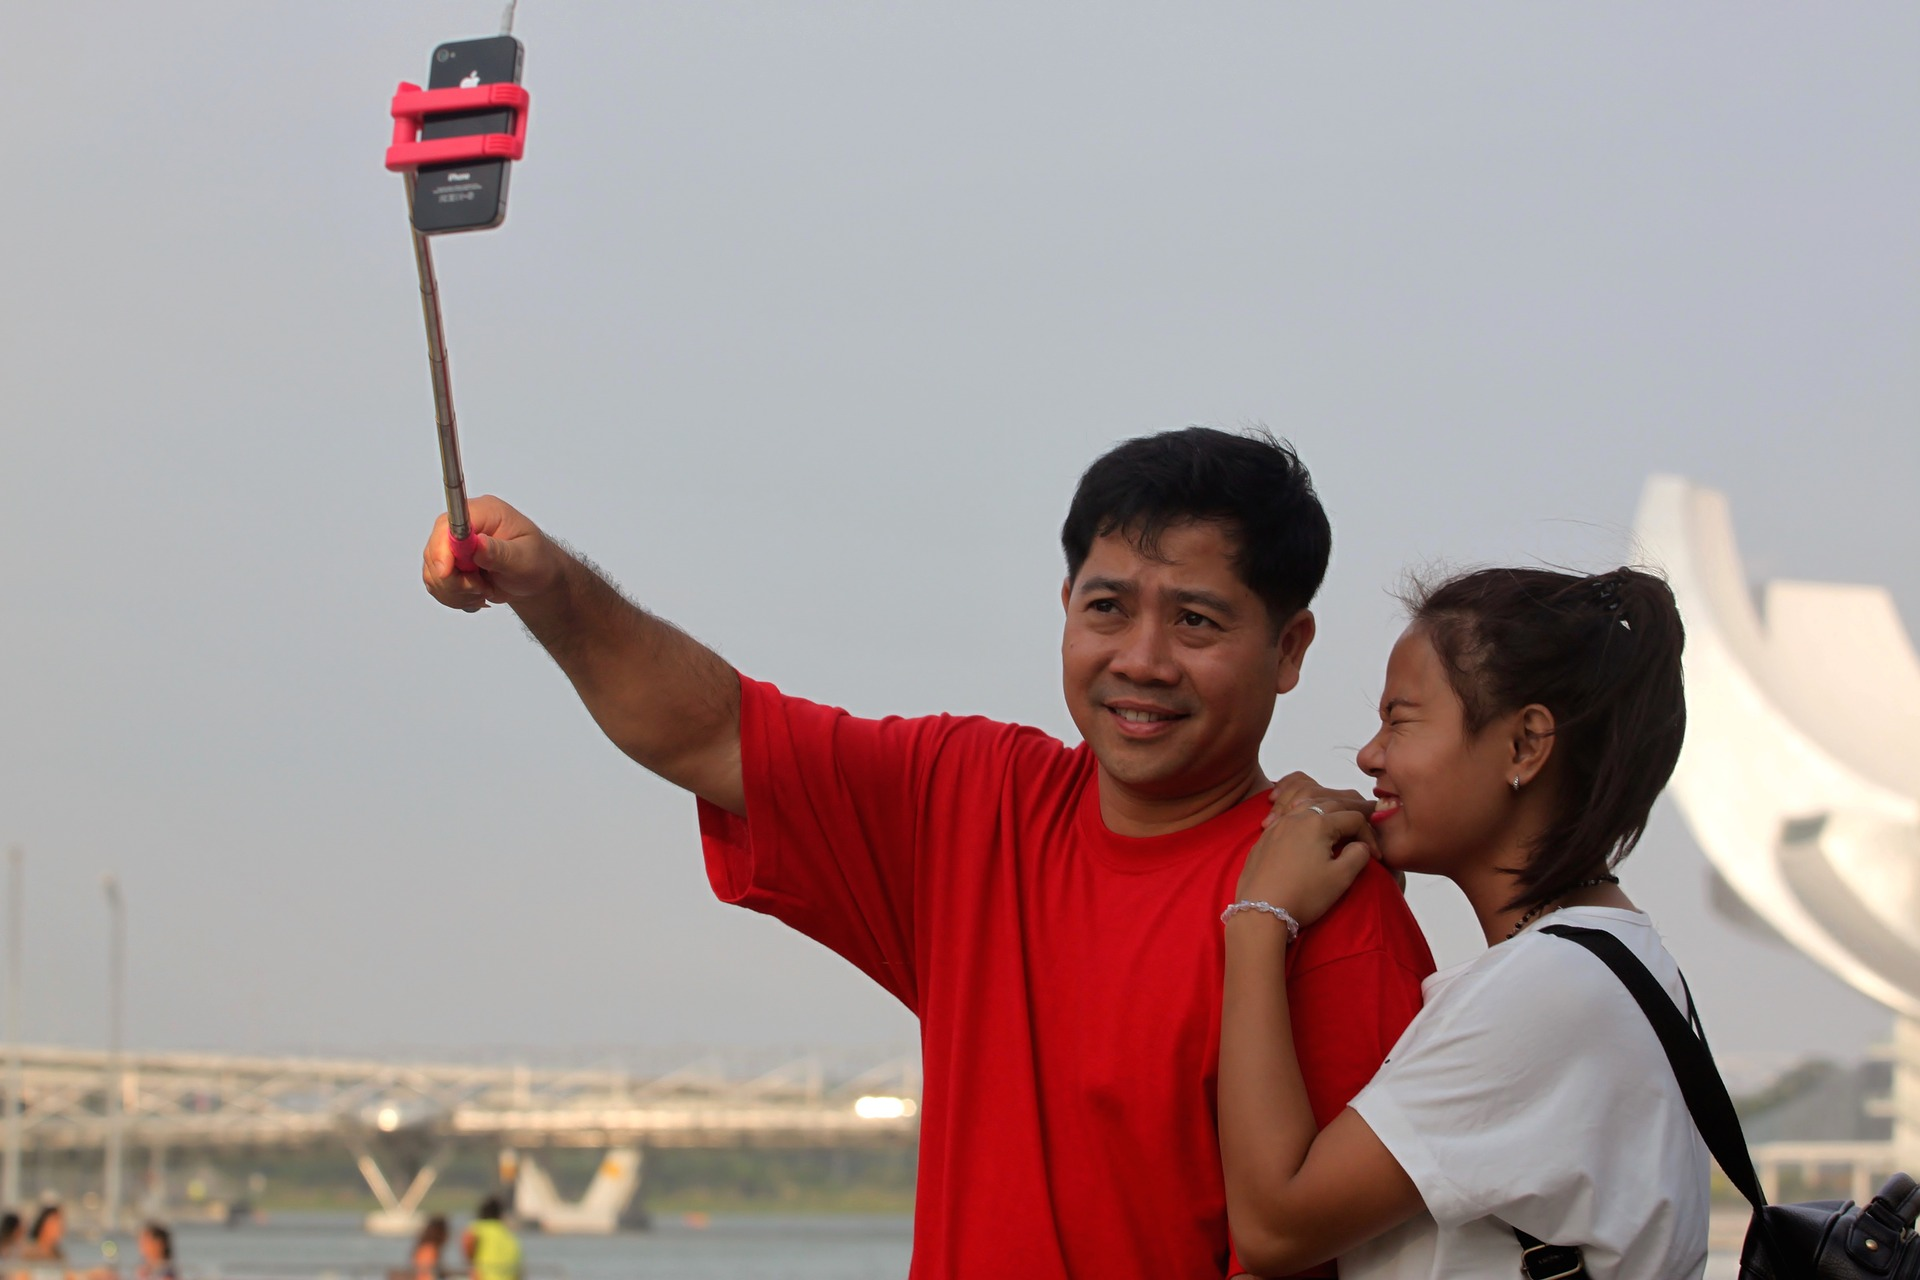 Couple taking photo with selfie stick